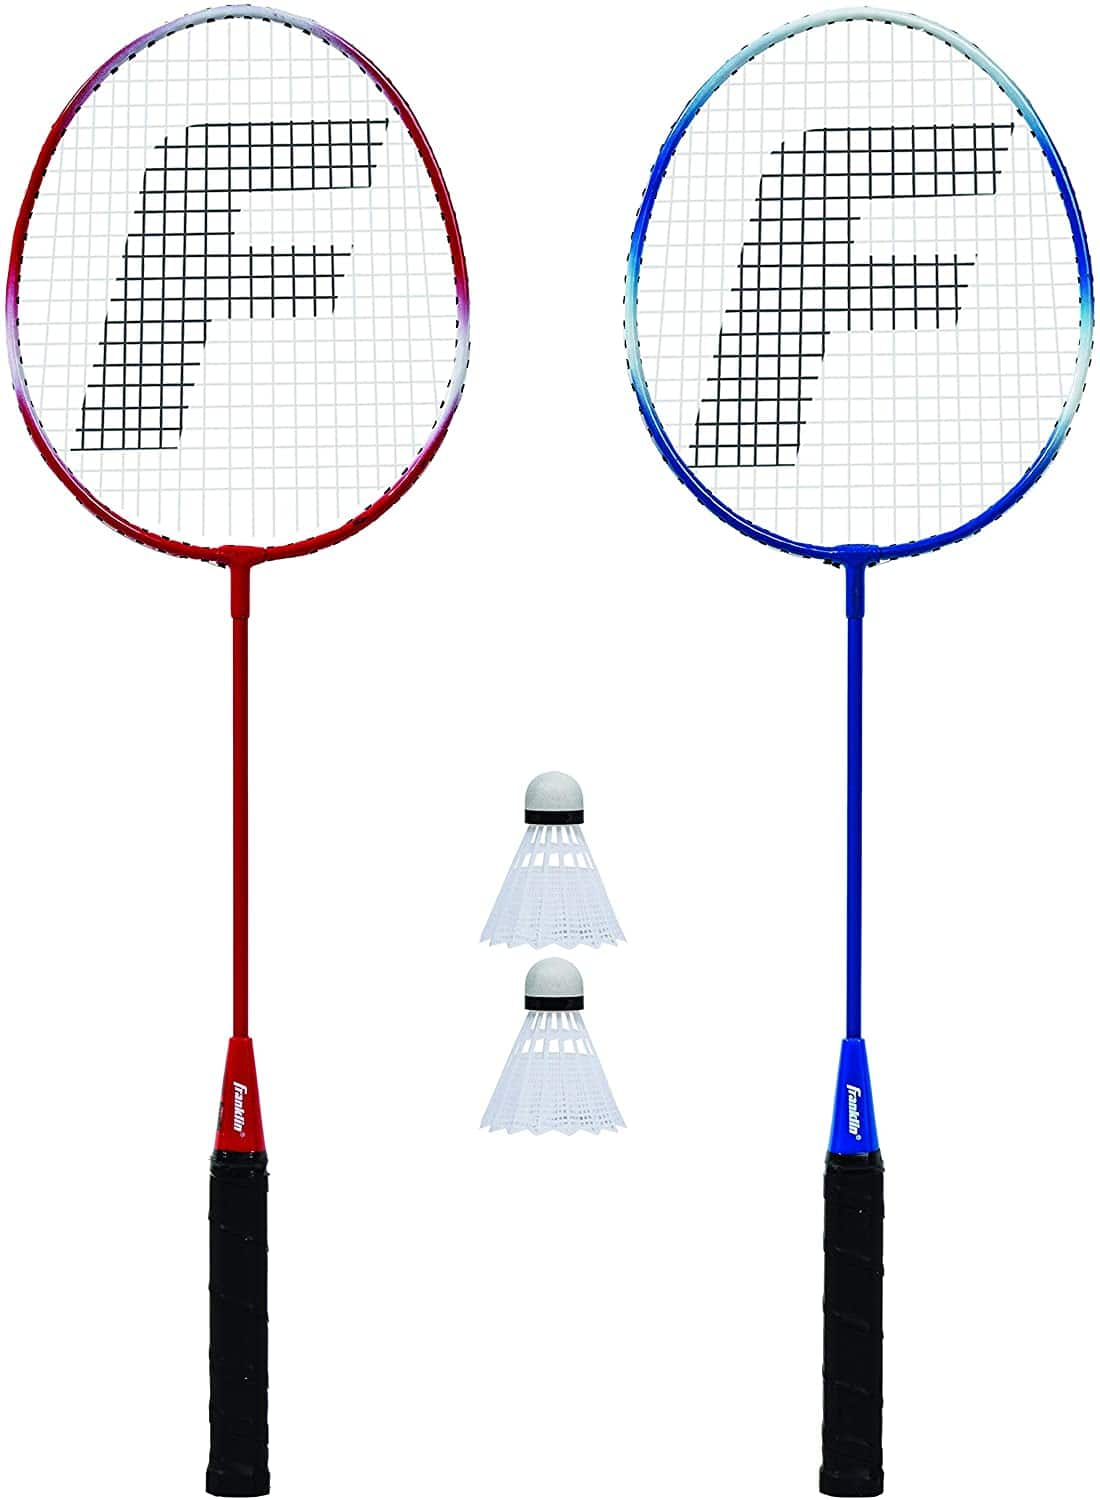 Franklin Sports 2 Player Badminton Racquet Replacement Set, One Size, Red, White, Blue (52623X) - $9.99 at Amazon